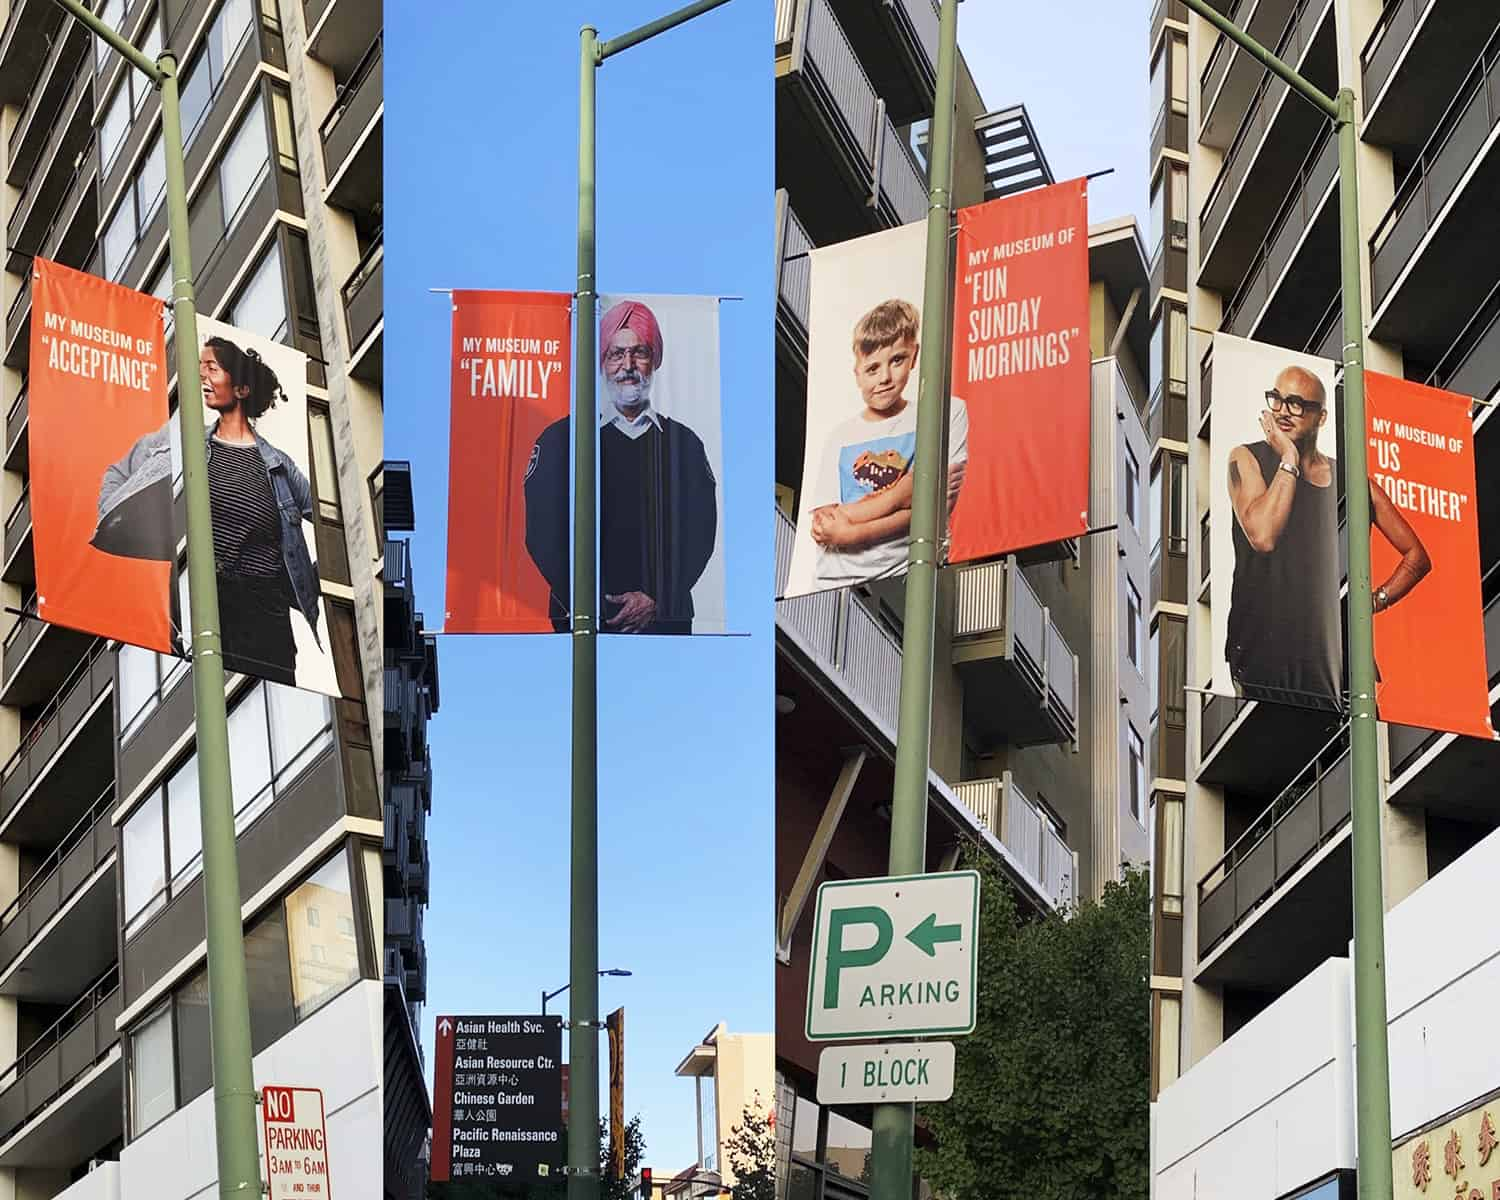 ONE by ONE Community Portrait OMCA street banners